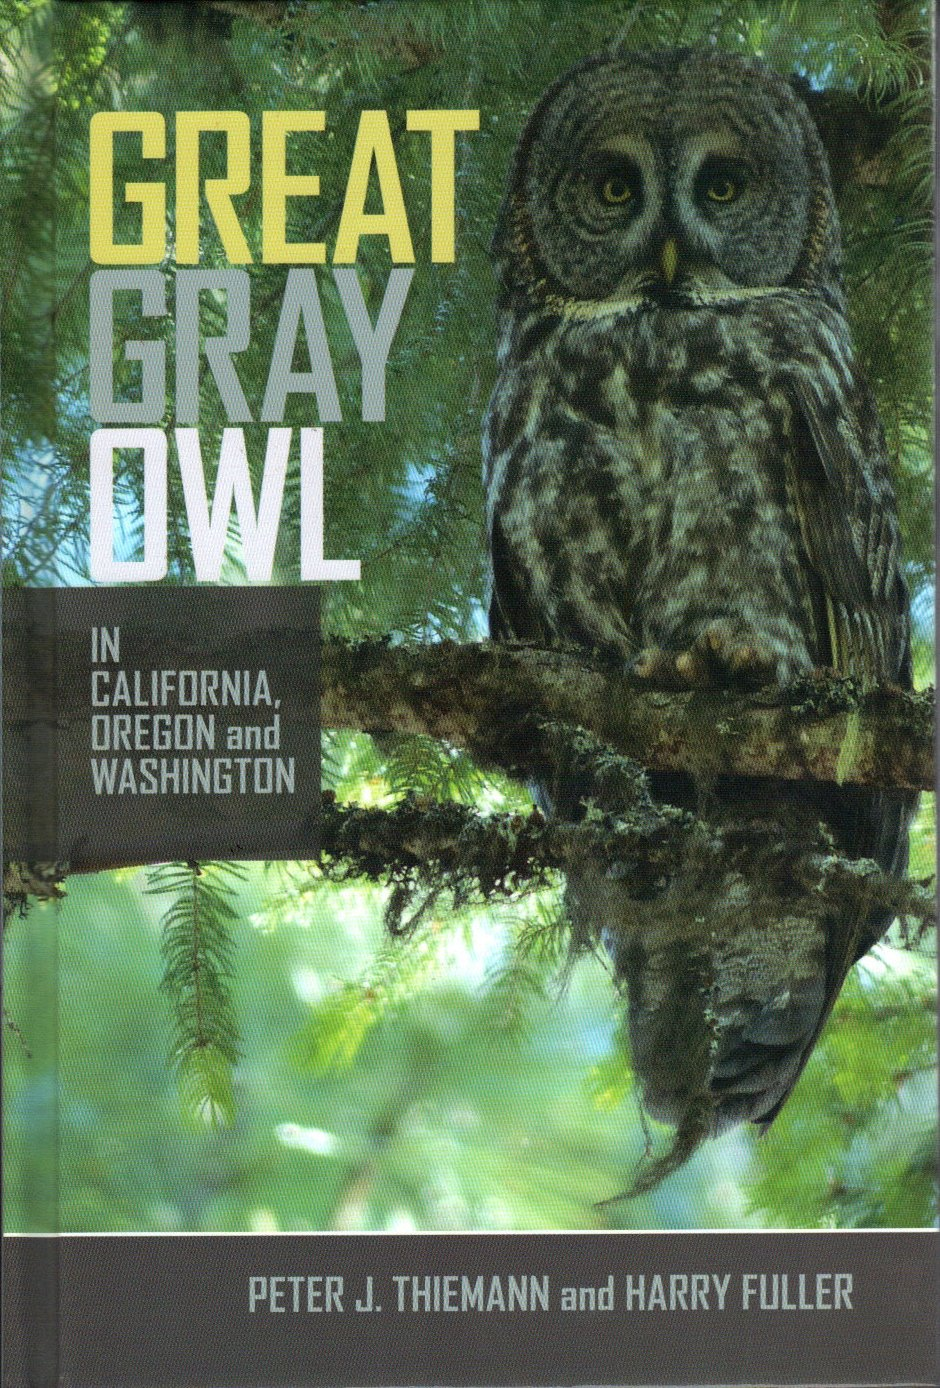 Great Gray Owl Of California, Oregon And Washington: Peter J Thiemann,  Harry Fuller: 9780692401965: Amazon.com: Books